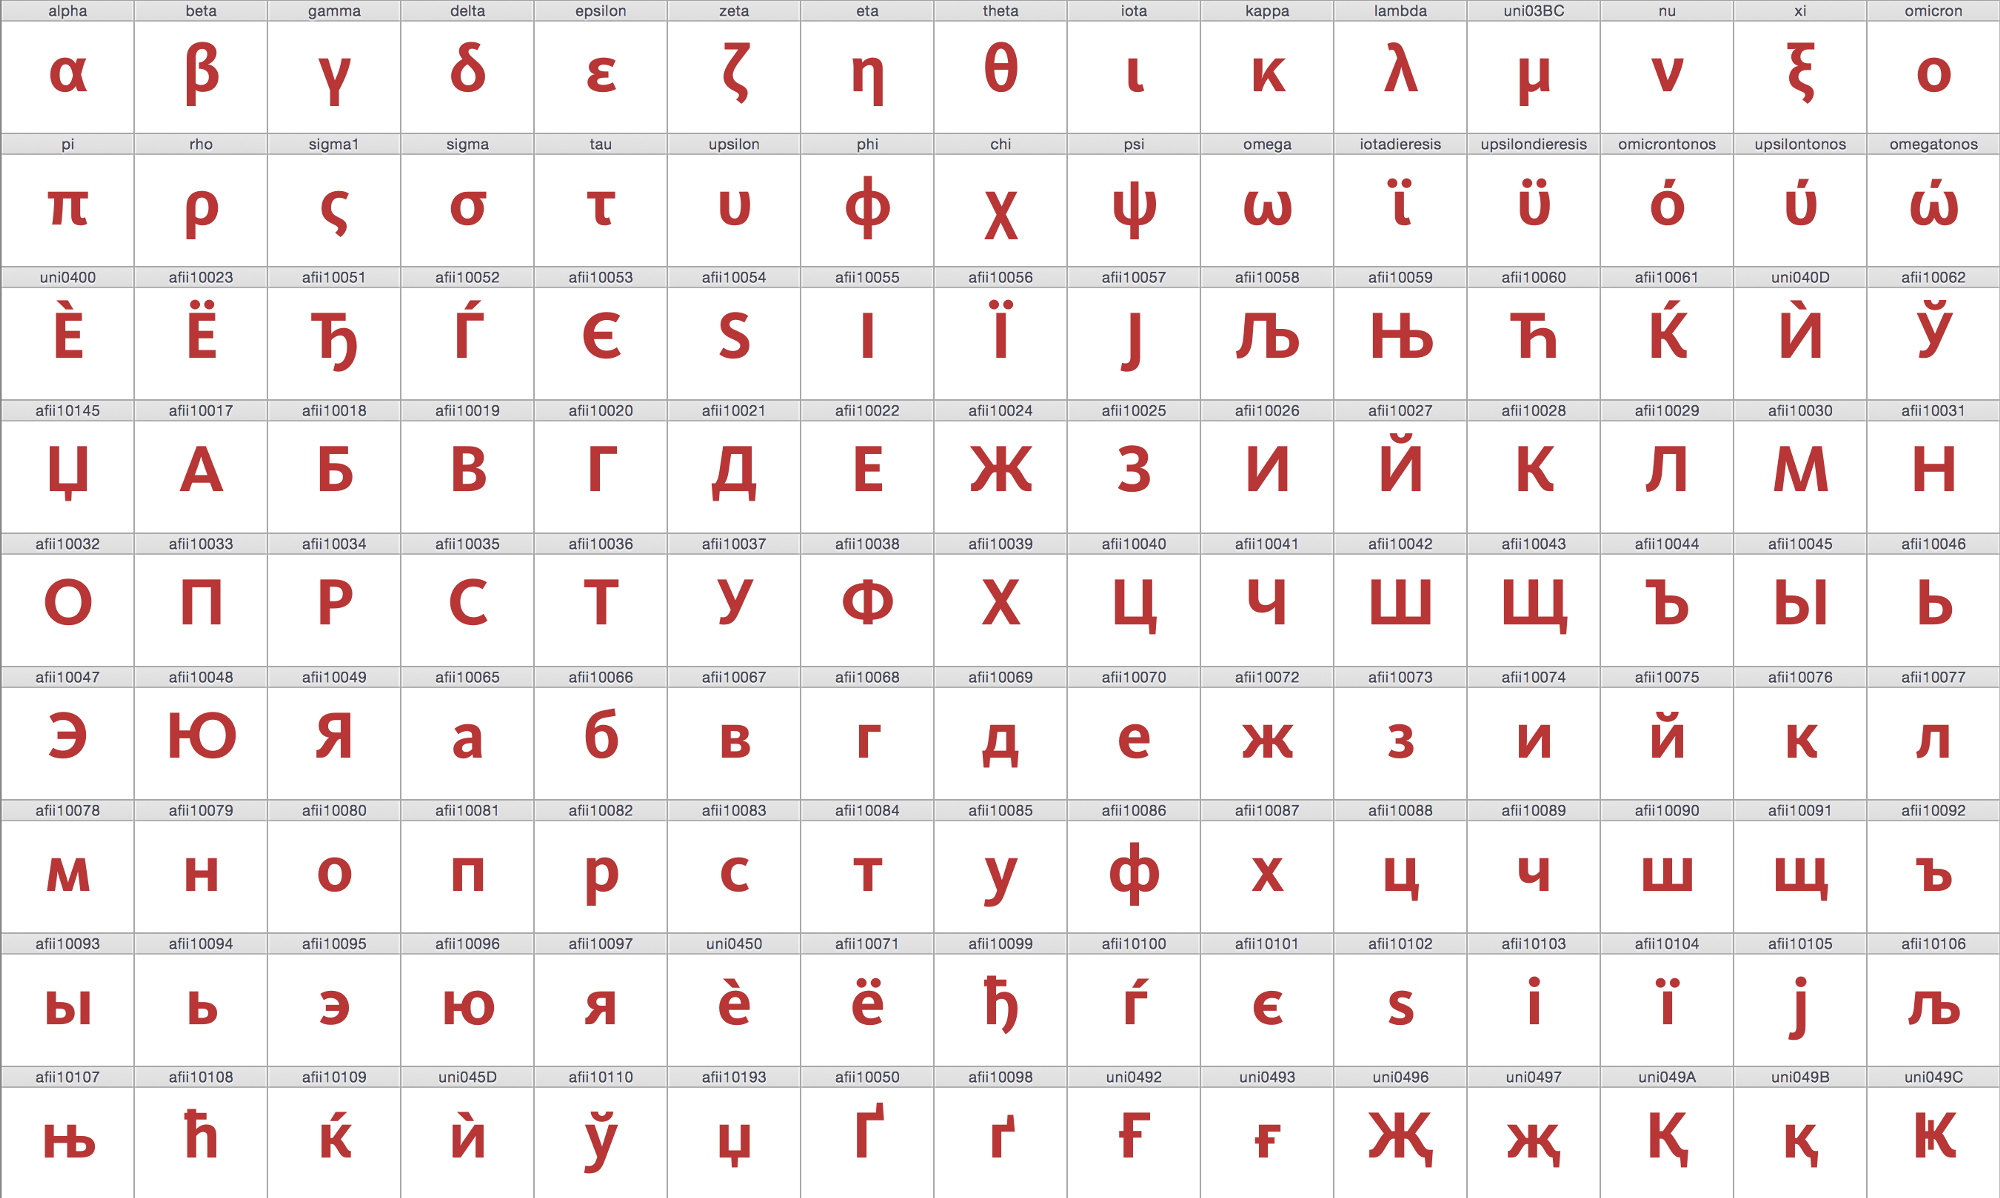 But not before a parting gift from me to you: all the glyphs of Kievit Bold, in case you want to explore yourself and find your own favourite glyphs.